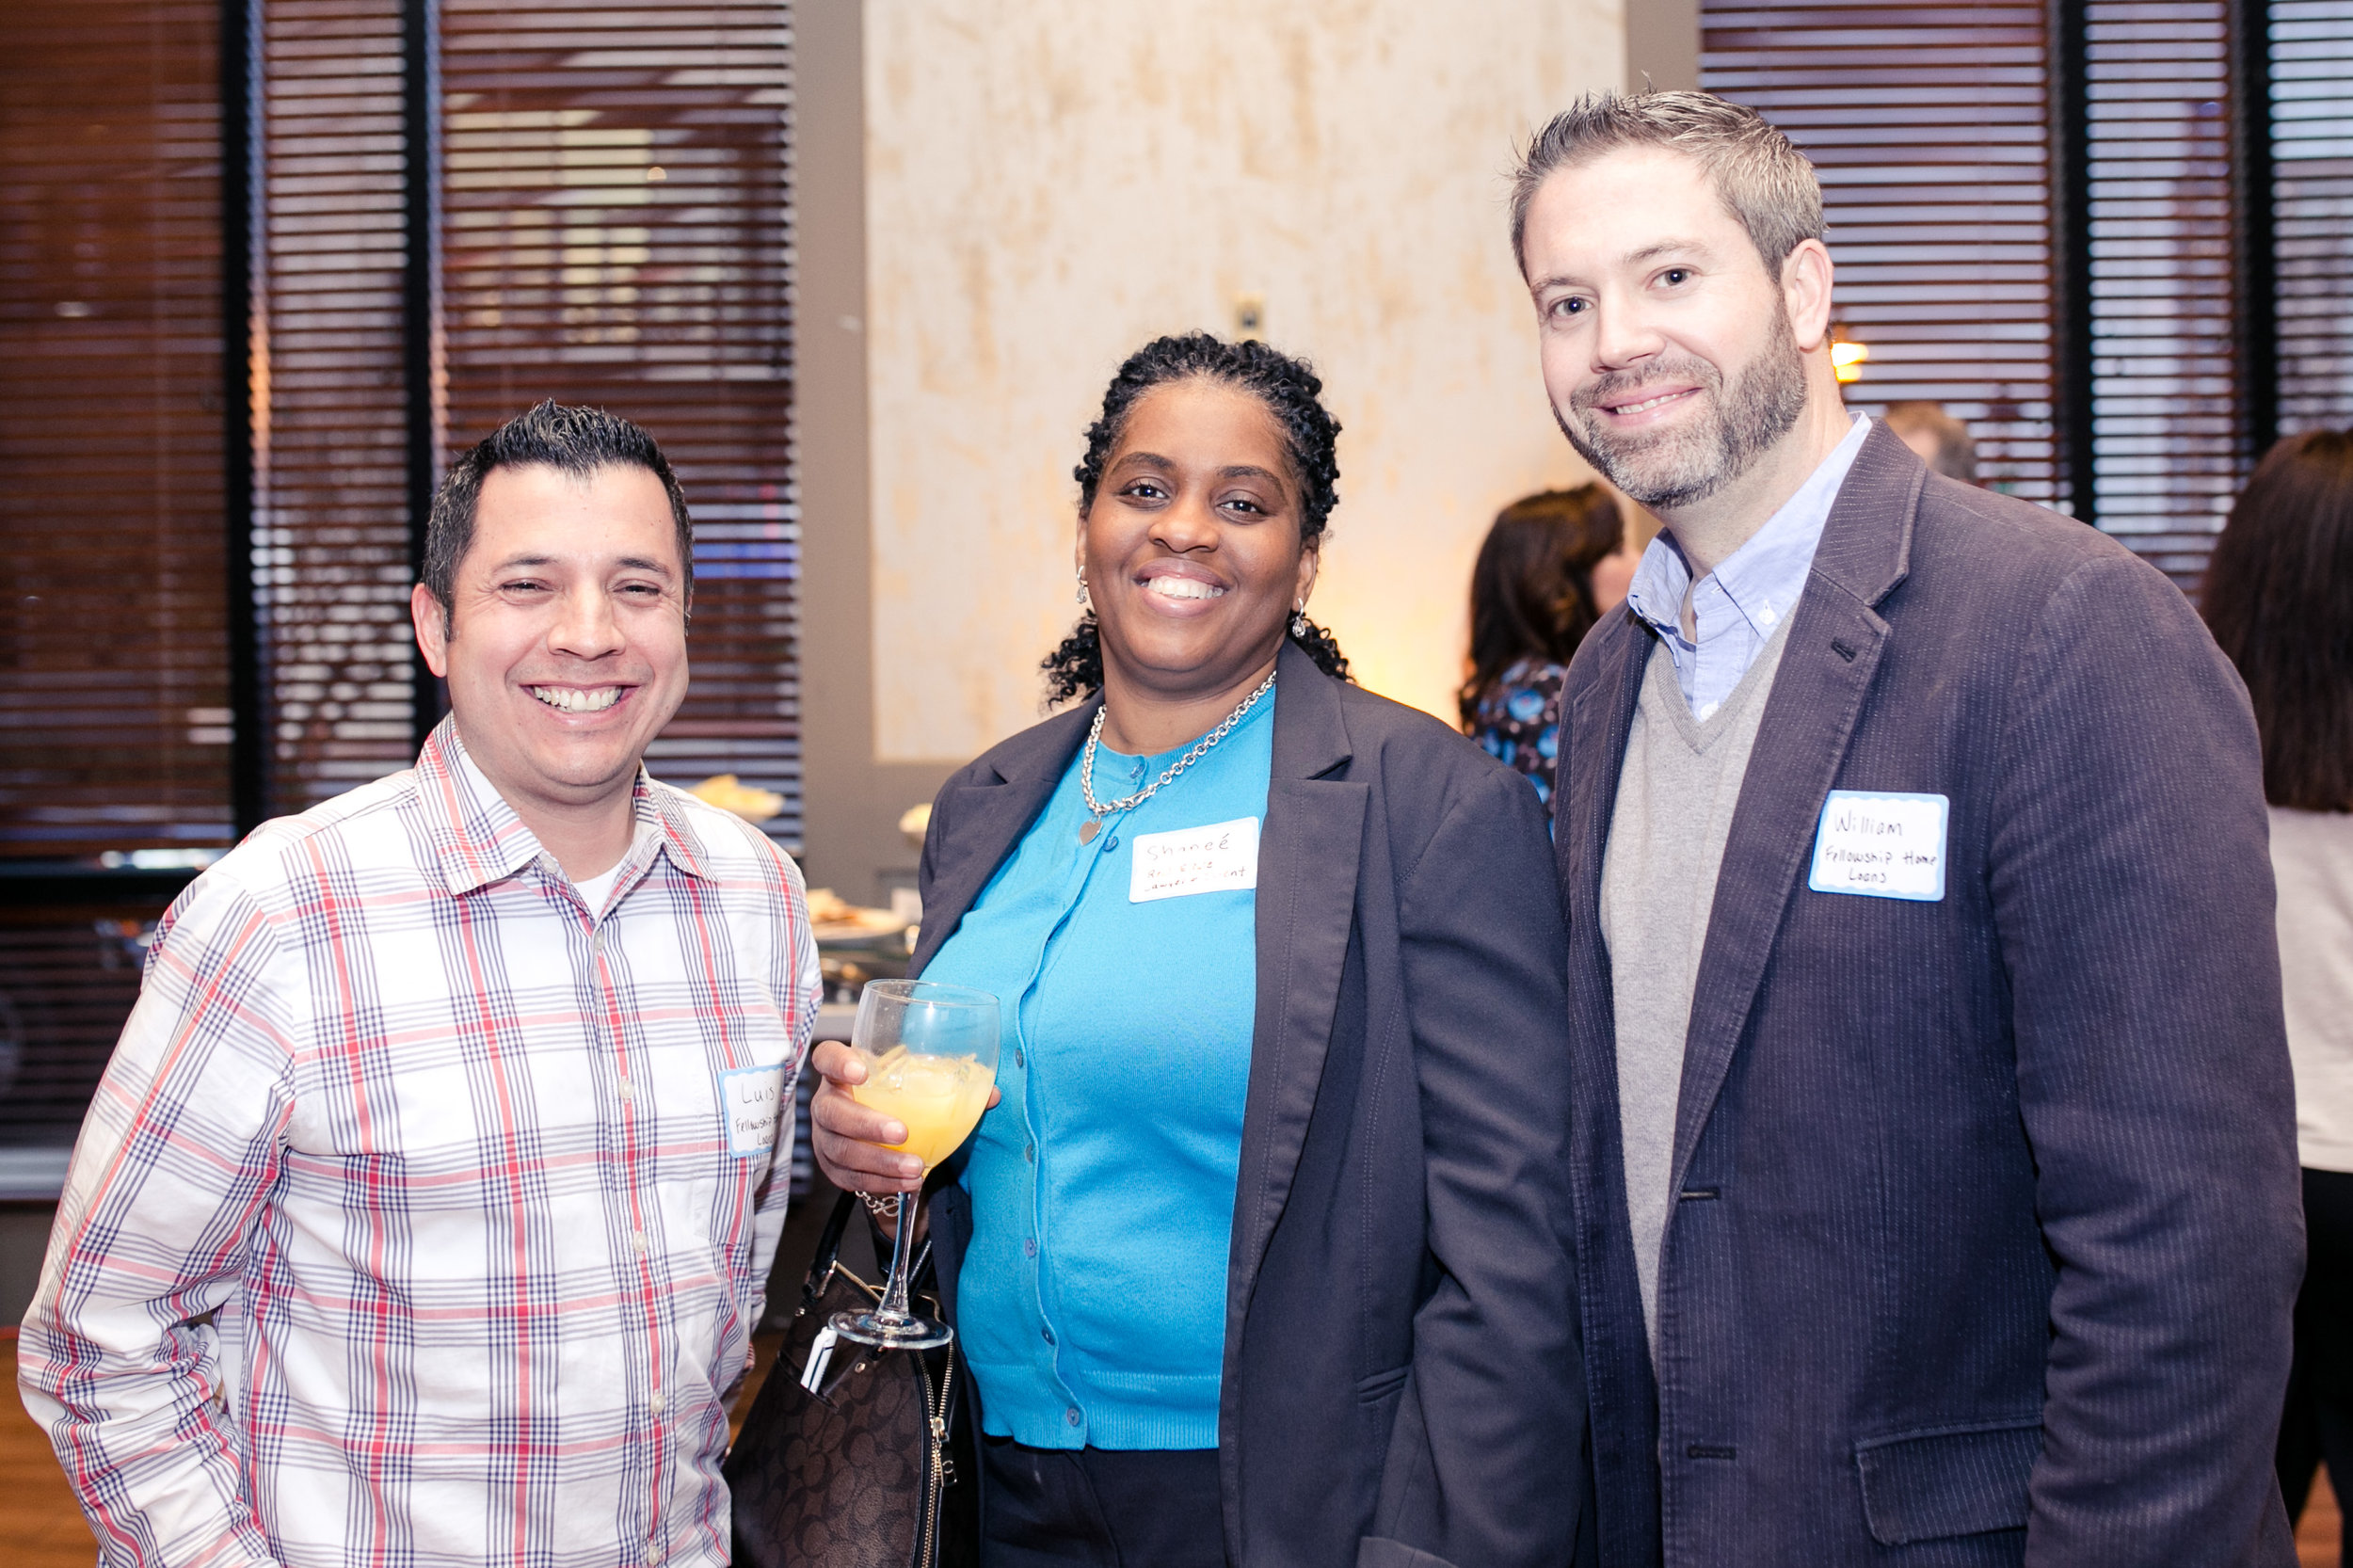 Fellowship_Marriott_Baltimore-0152.jpg